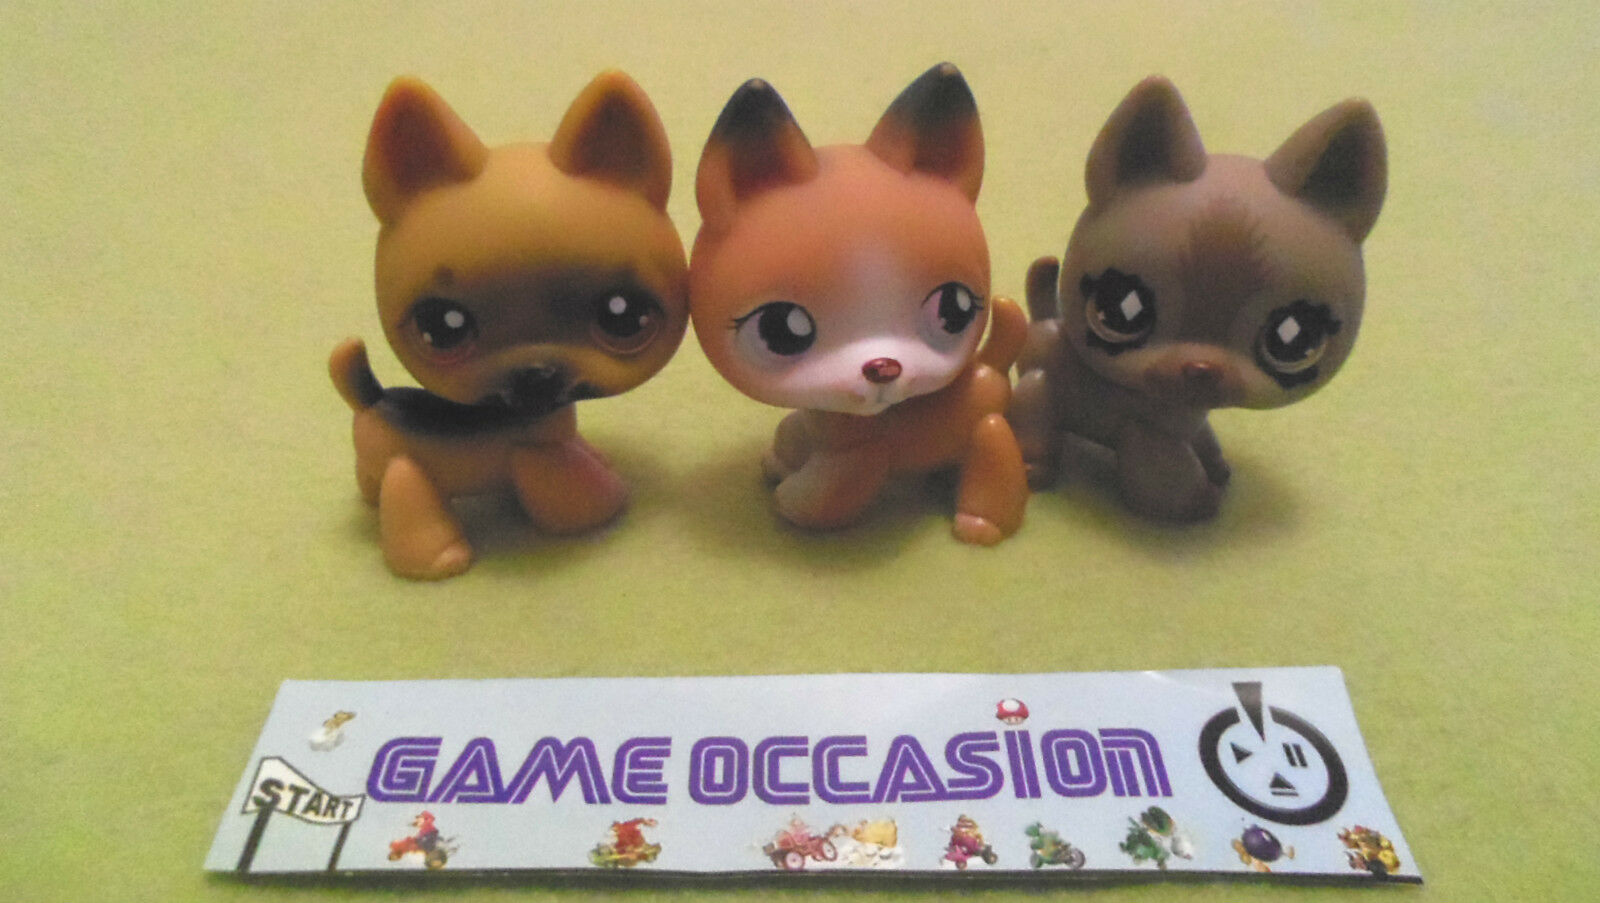 LITTLEST PETSHOP PET SHOP HUND BERGER DEUTSCH NR.061 NR. 491 NR.112